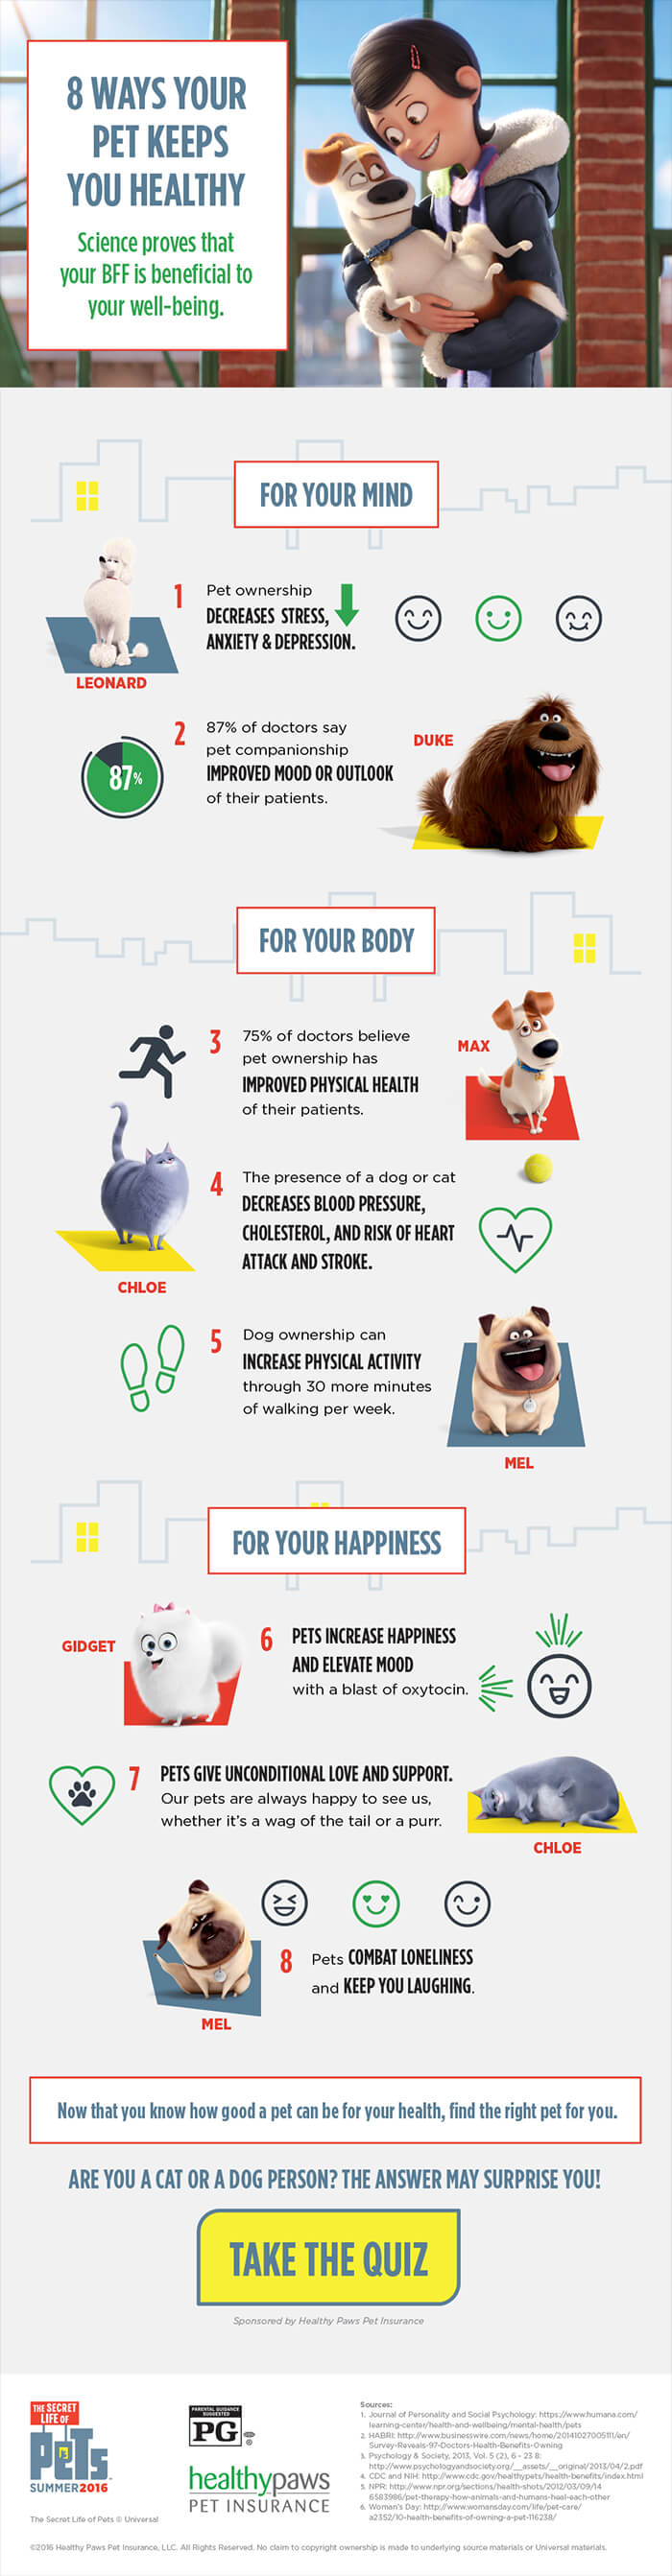 8-ways-your-pet-keeps-you-healthy